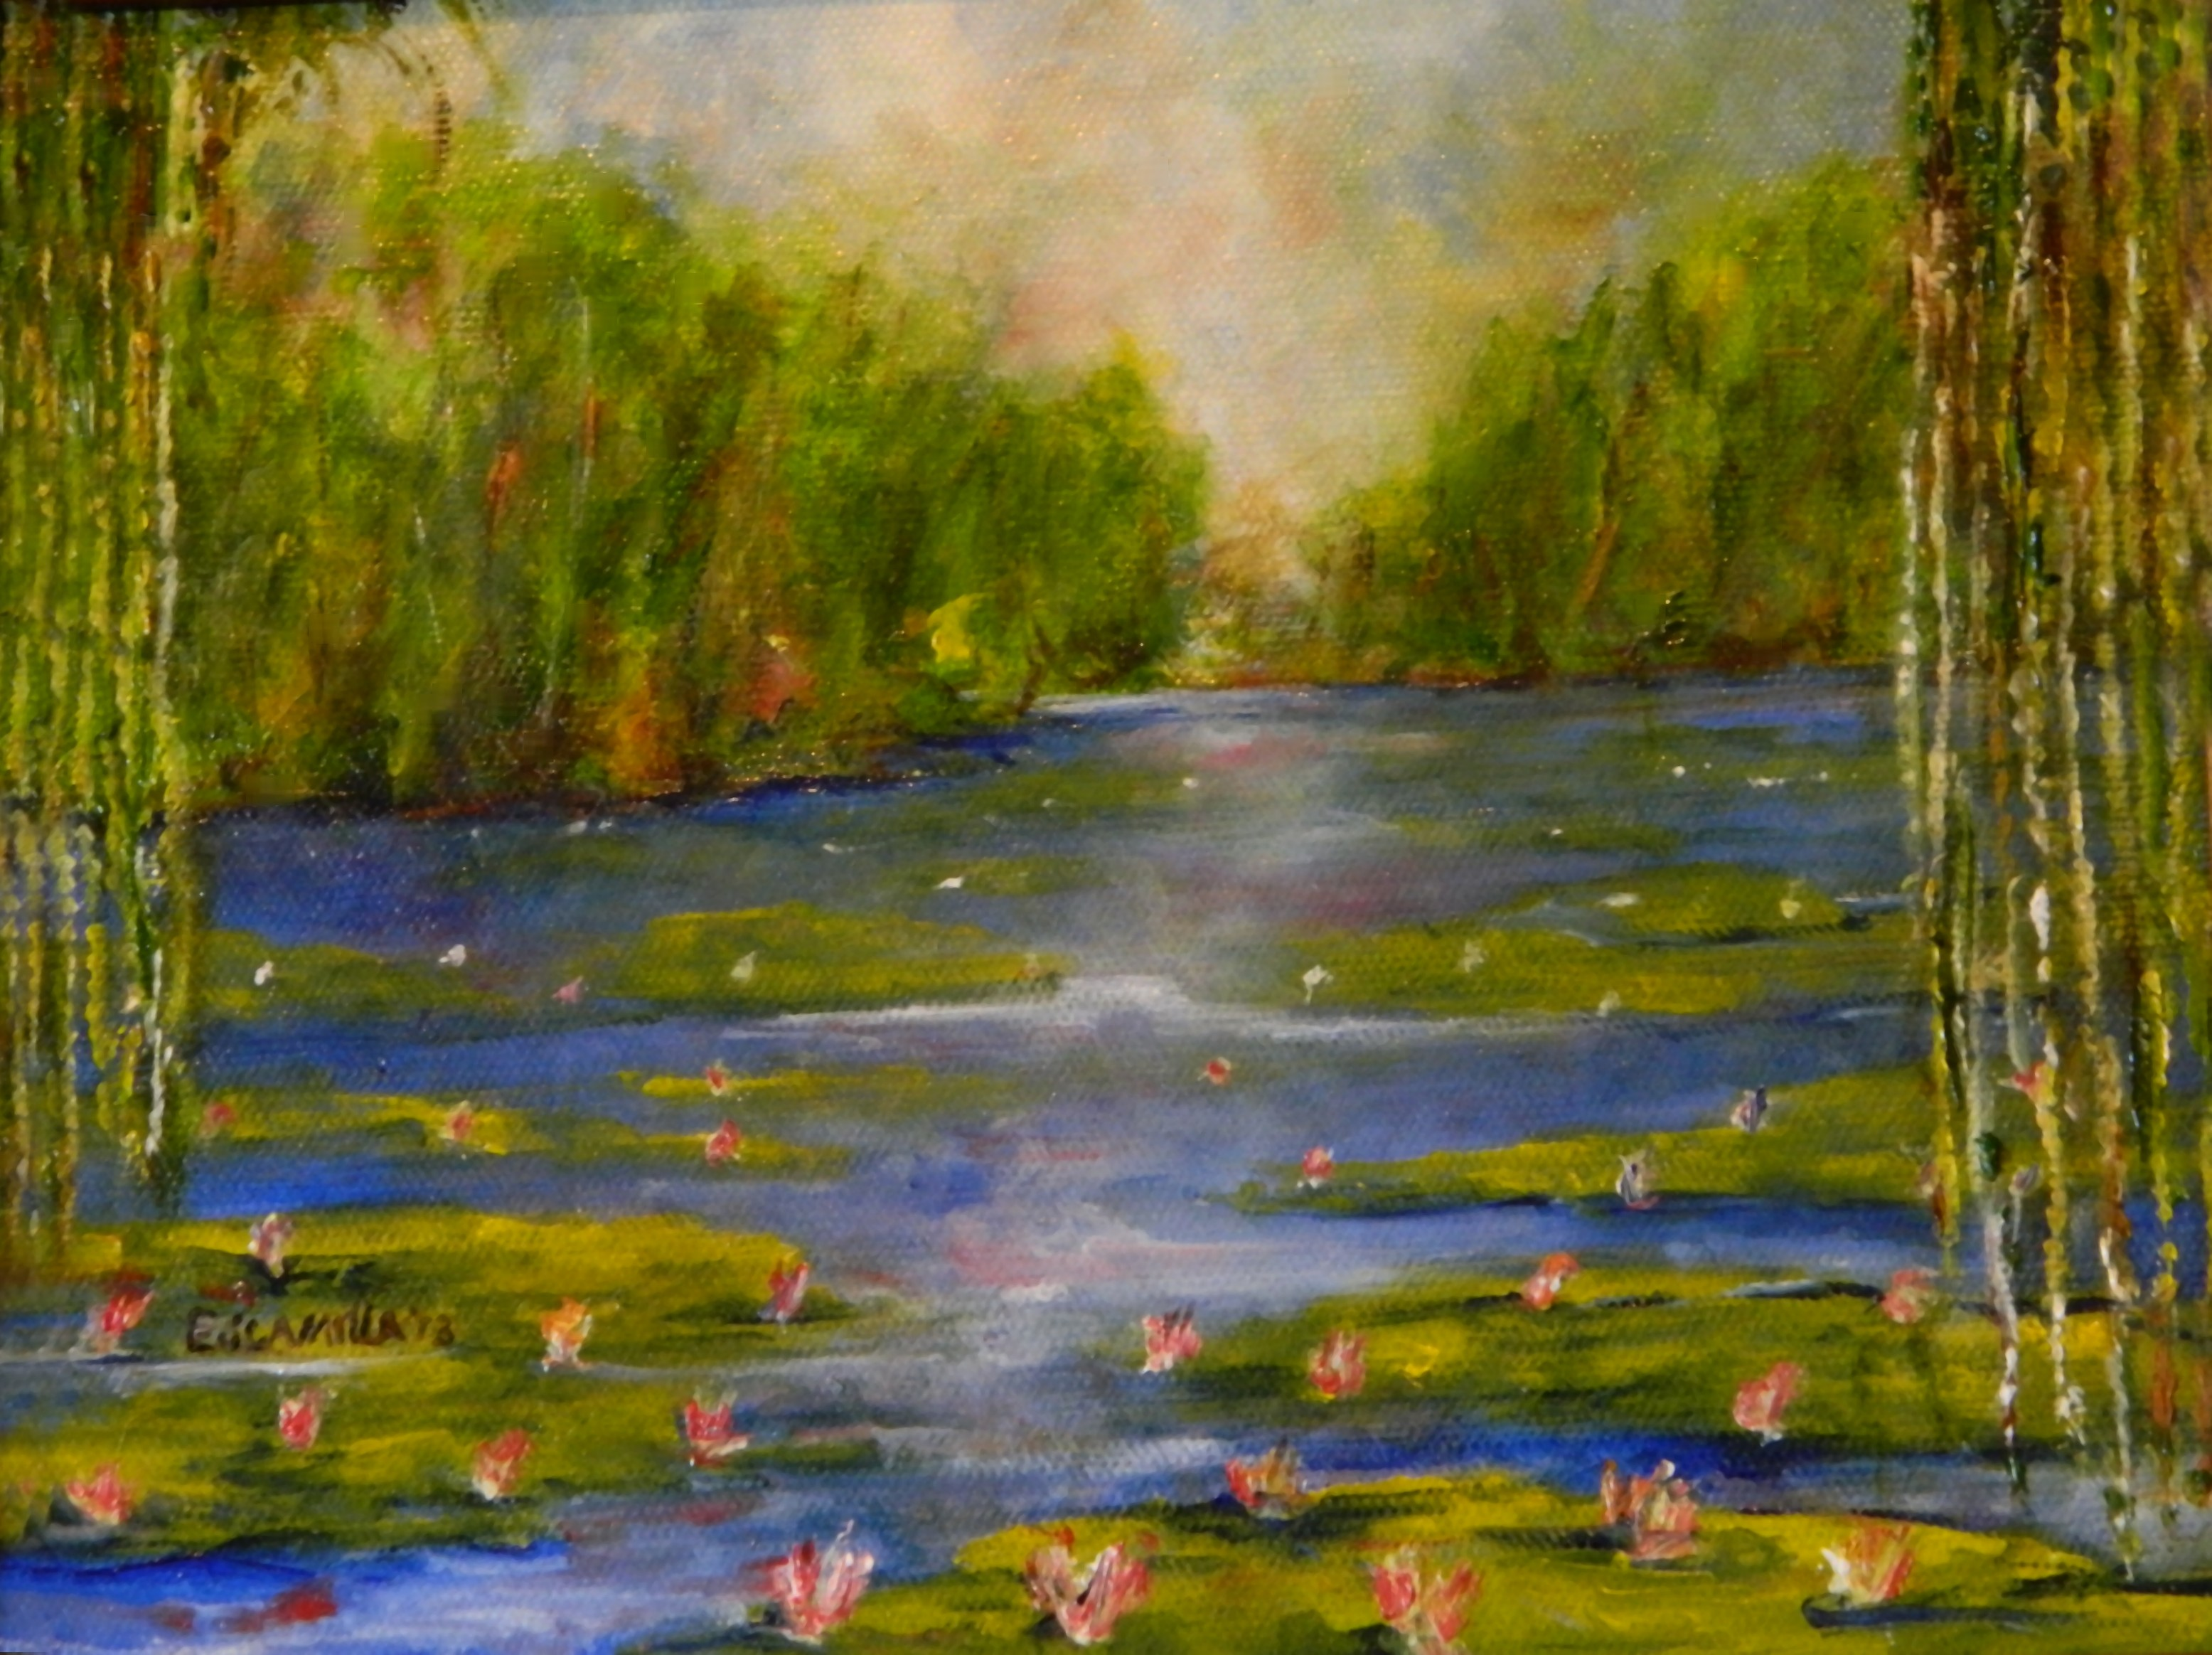 Angelic_waterlilies_2013